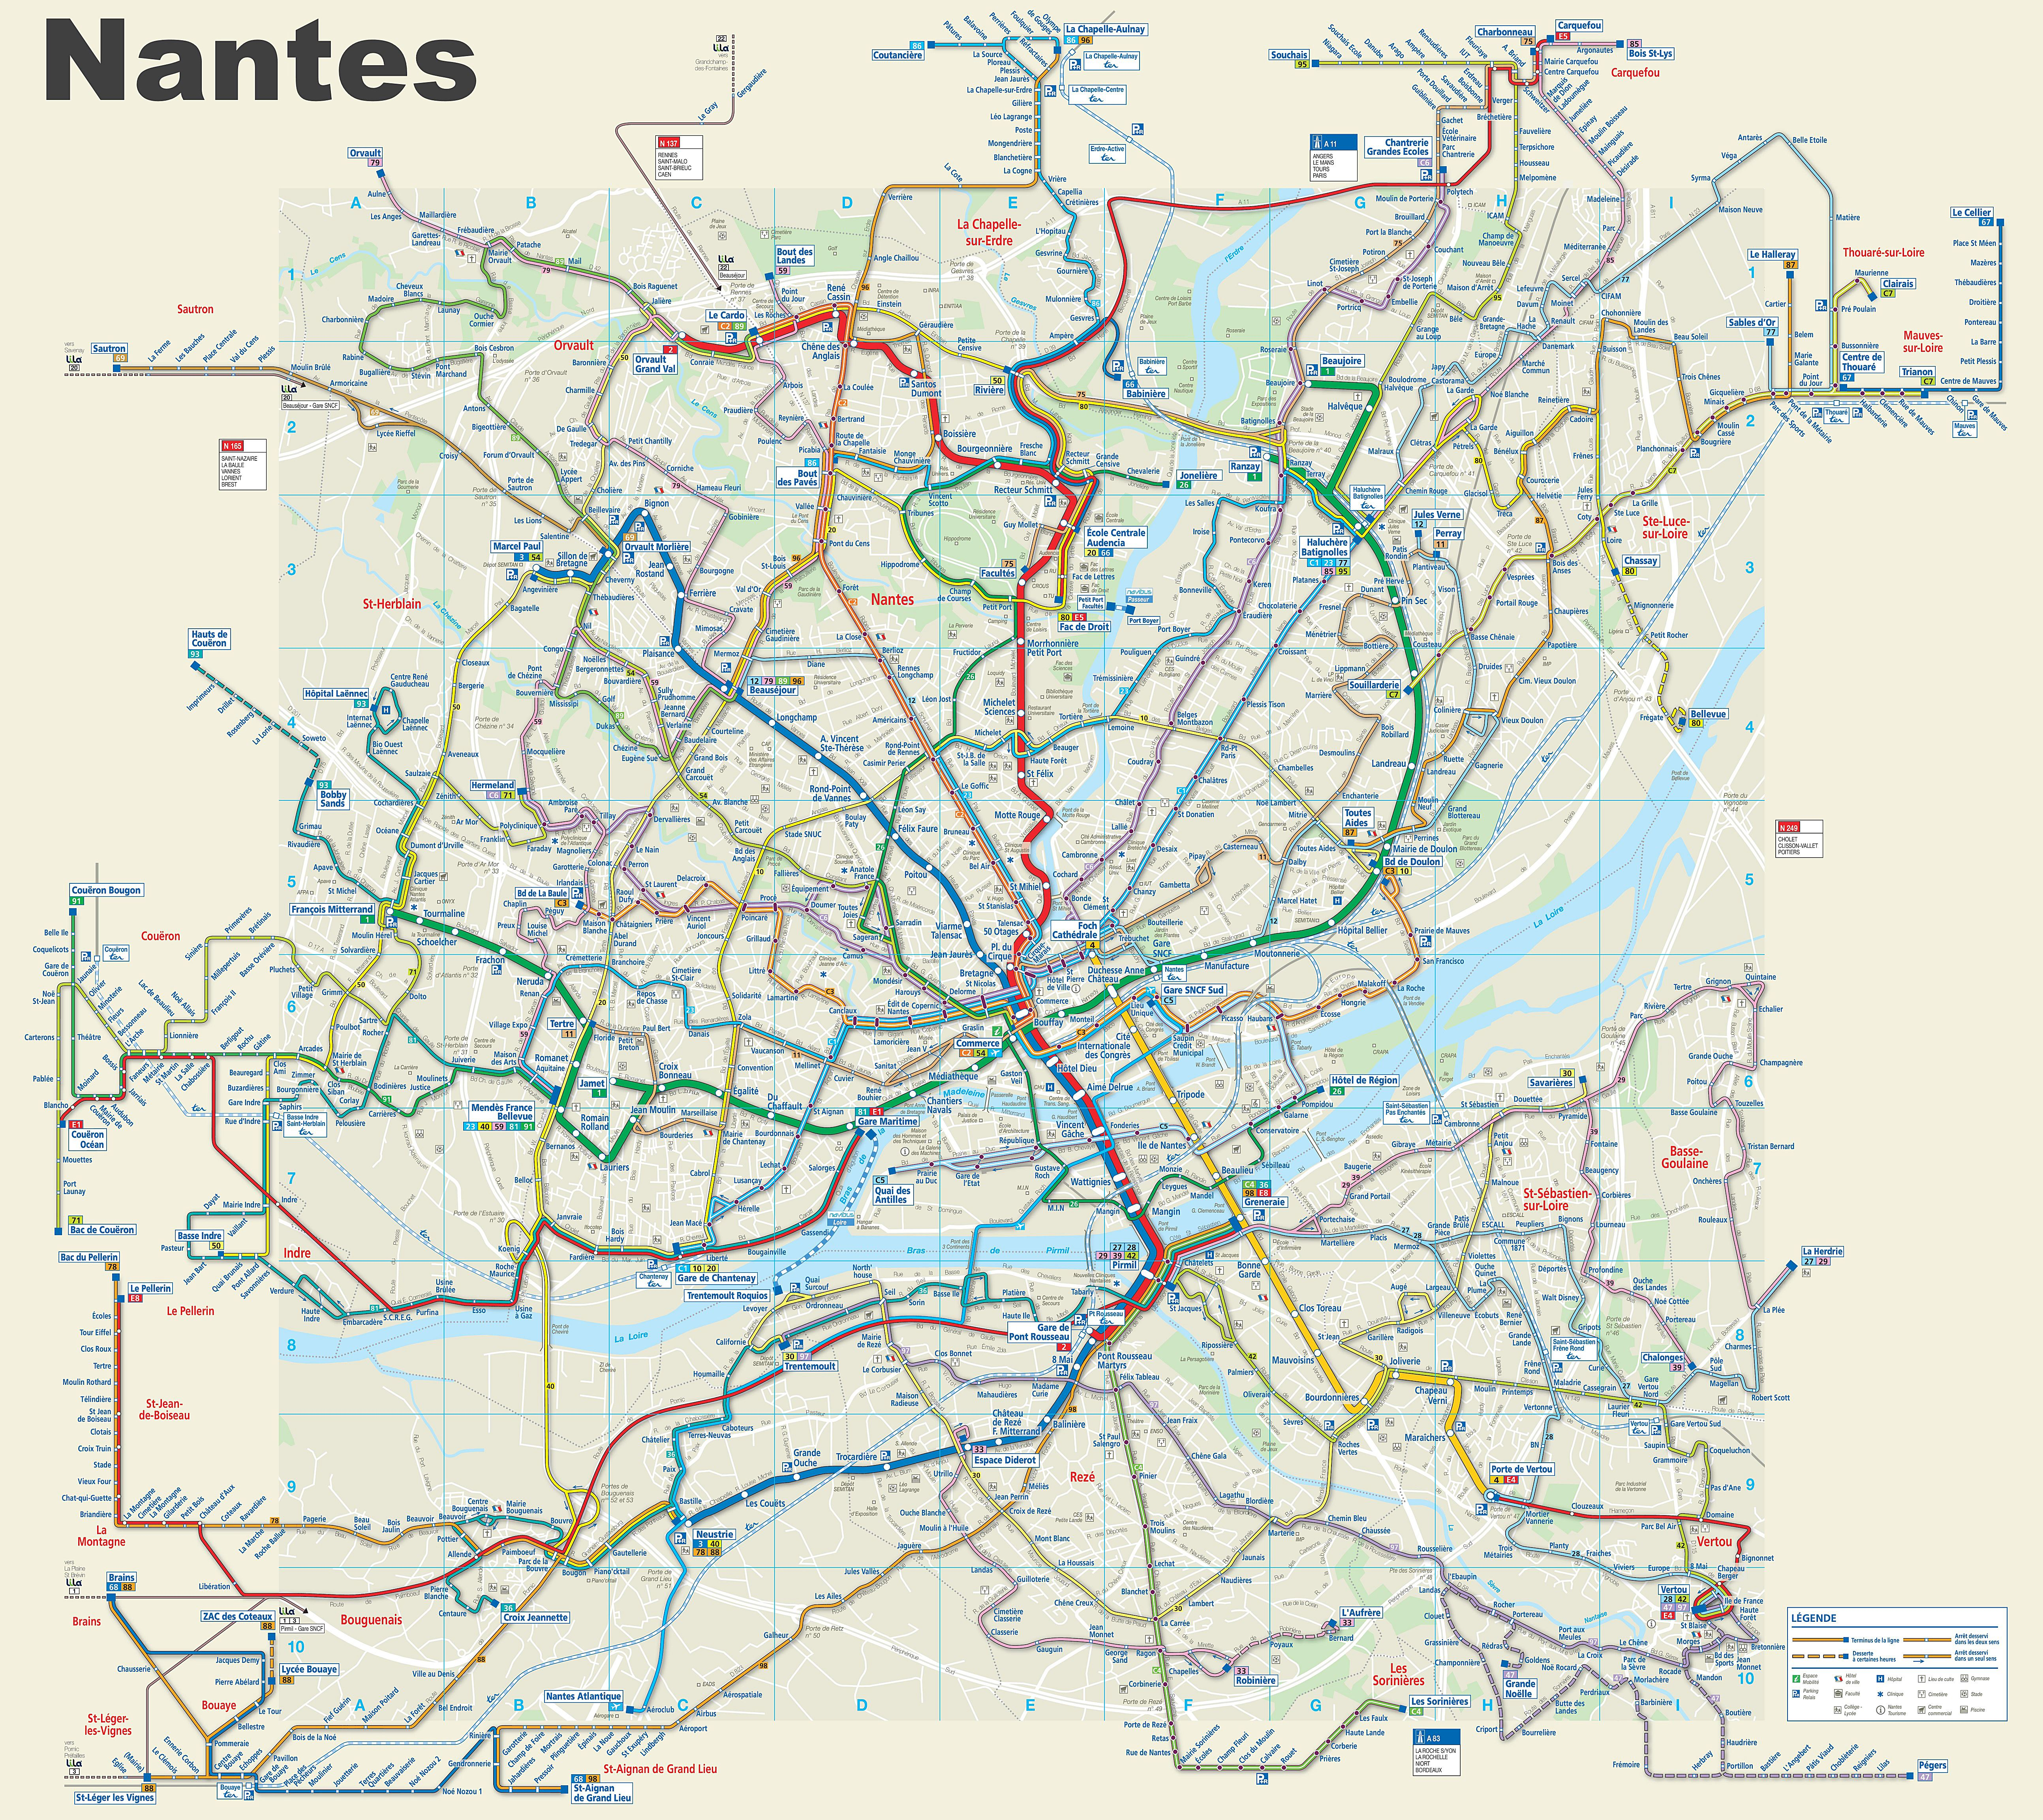 Large Nantes Maps for Free Download and Print HighResolution and